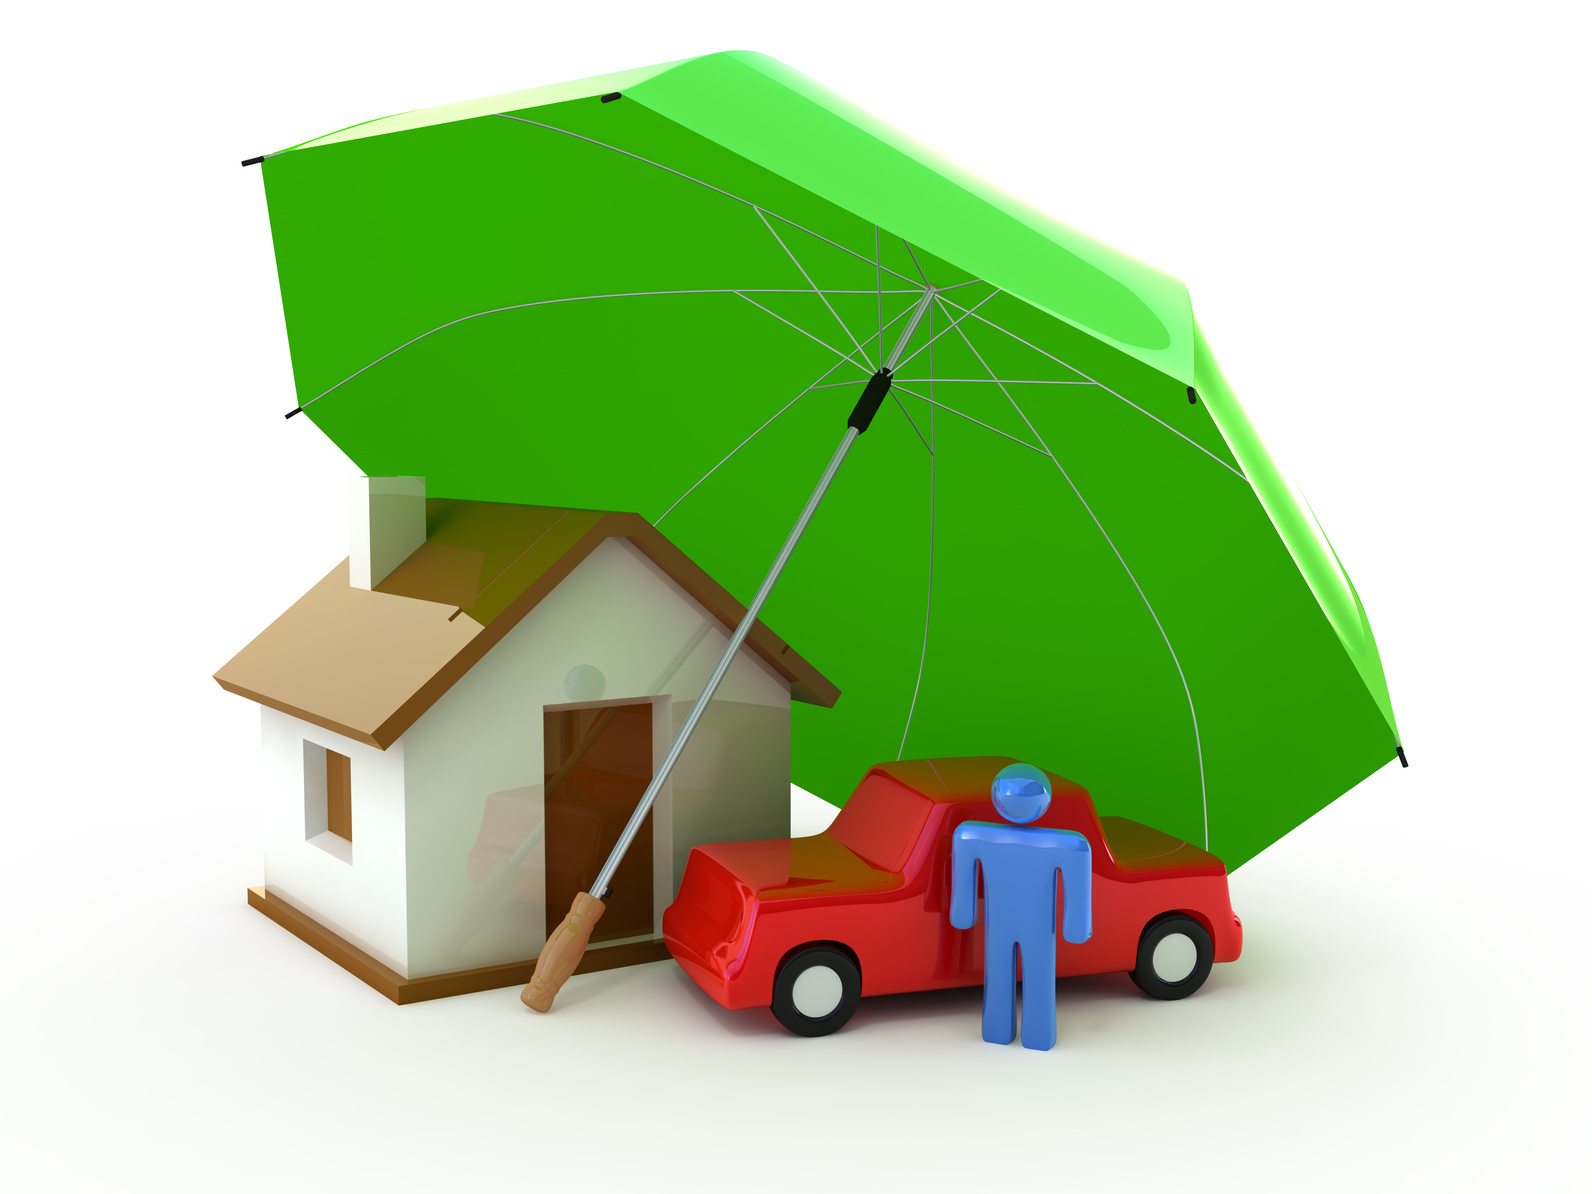 5 Reasons To Be Thankful For Home & Auto Insurance